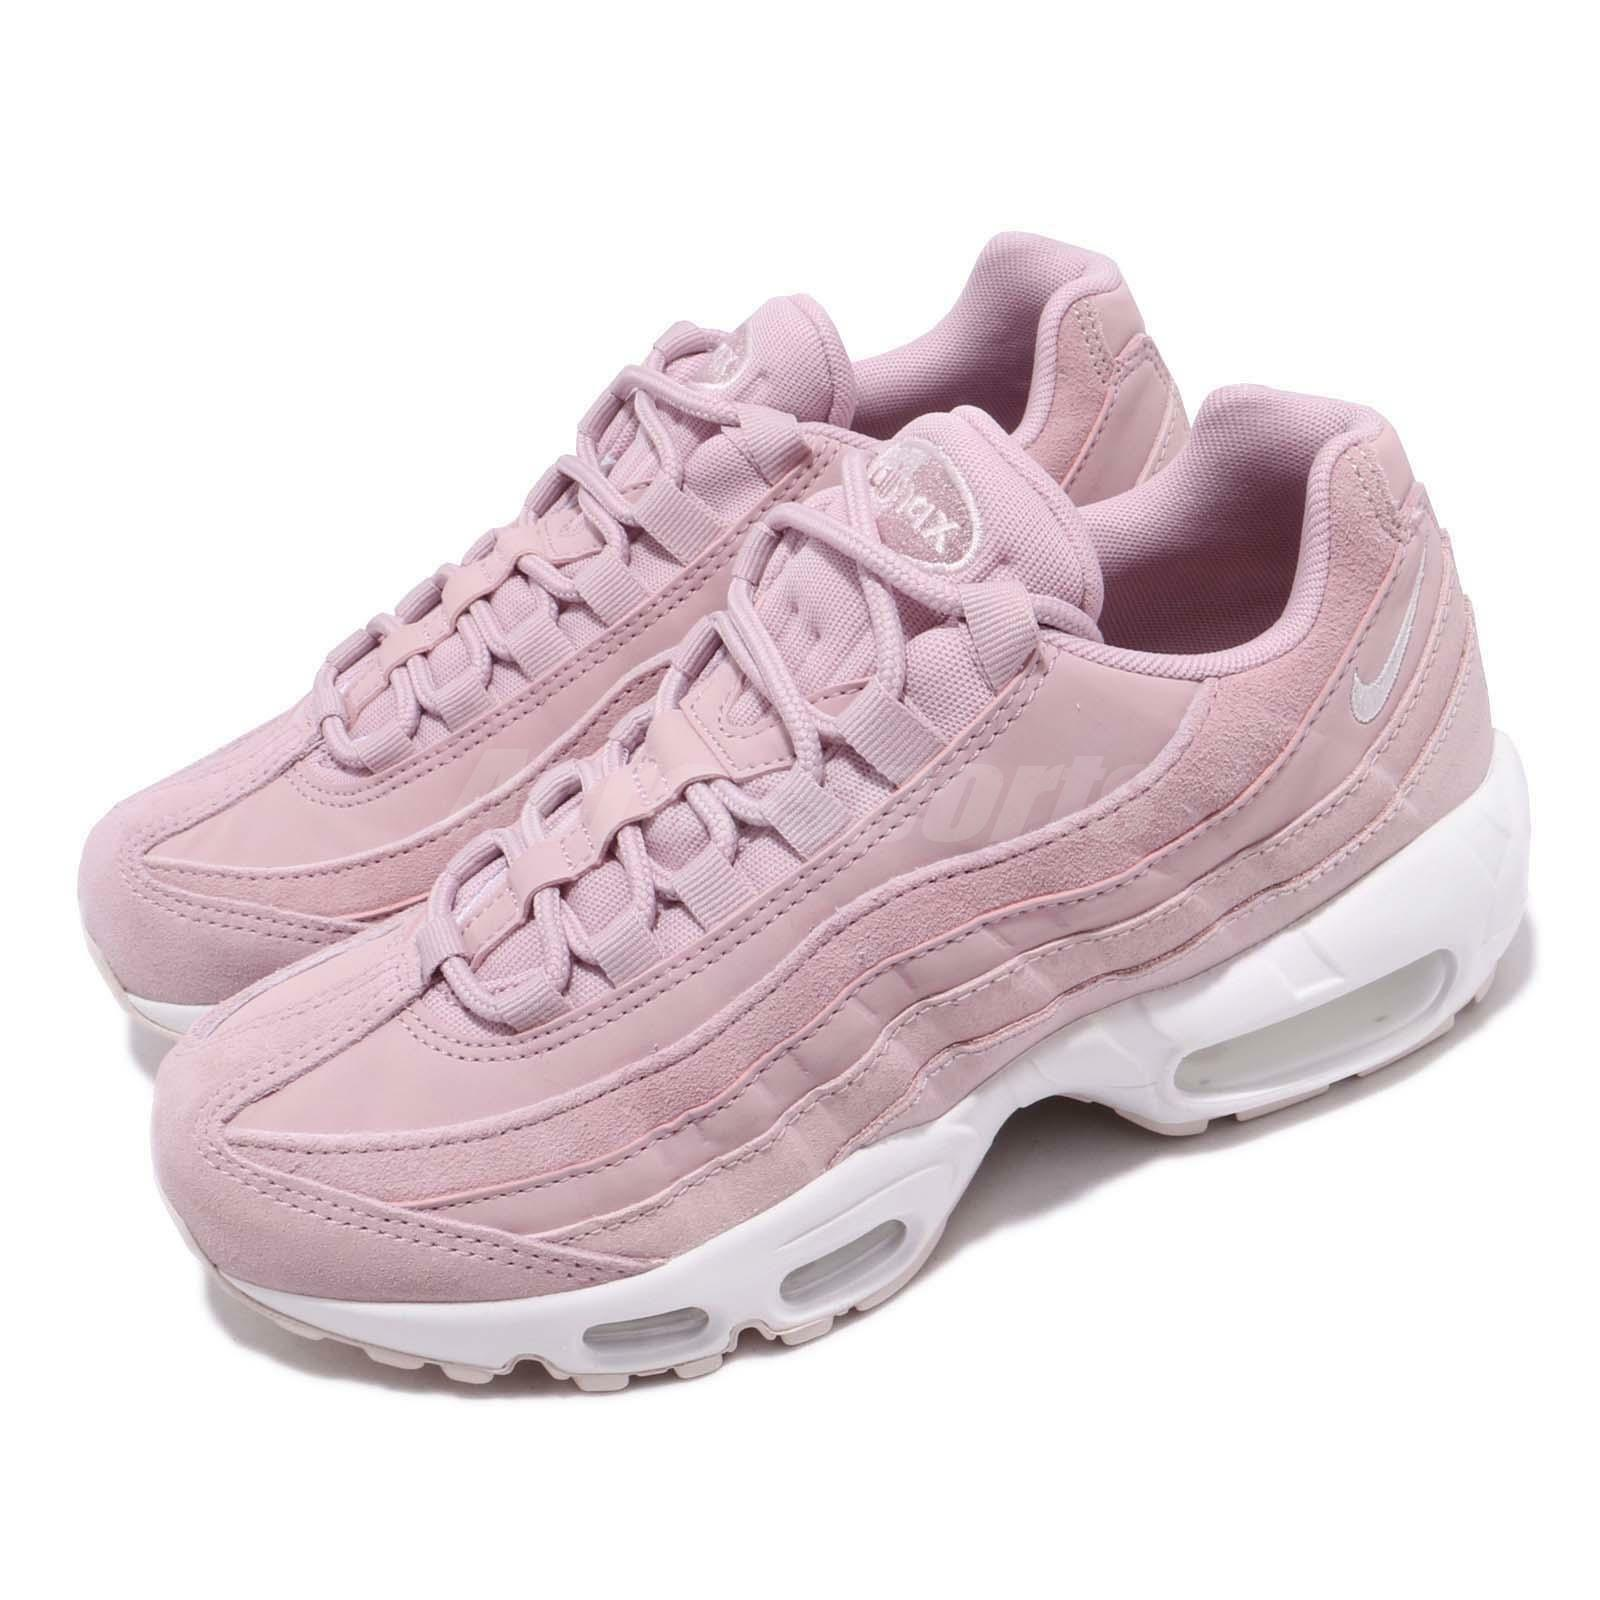 Nike Wmns Air  Max 95 PRM Plum Chalk Barely pink Women Running shoes 807443-503  high discount